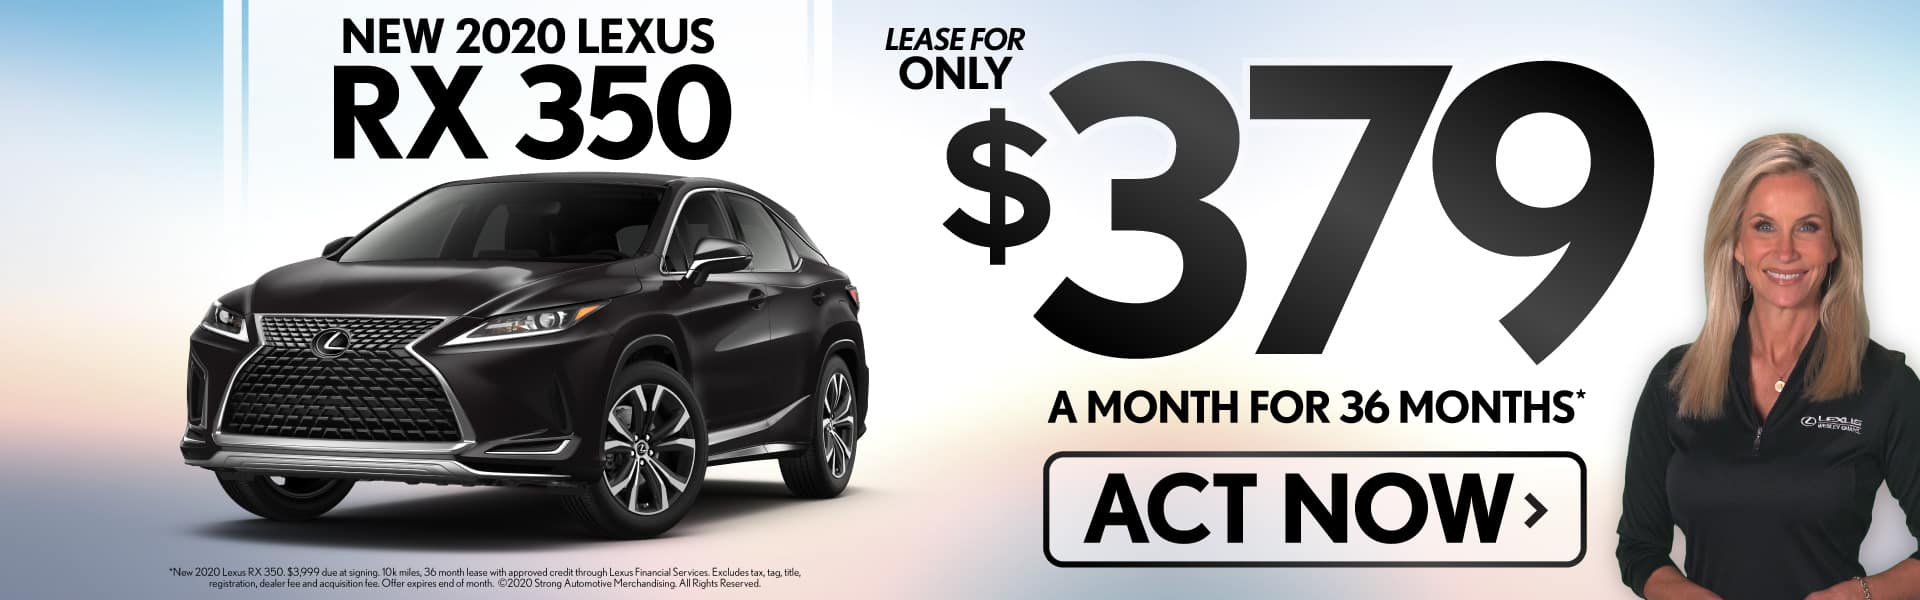 Alt Text: New 2020 Lexus RX 350 lease for only $379/mo - ACT NOW